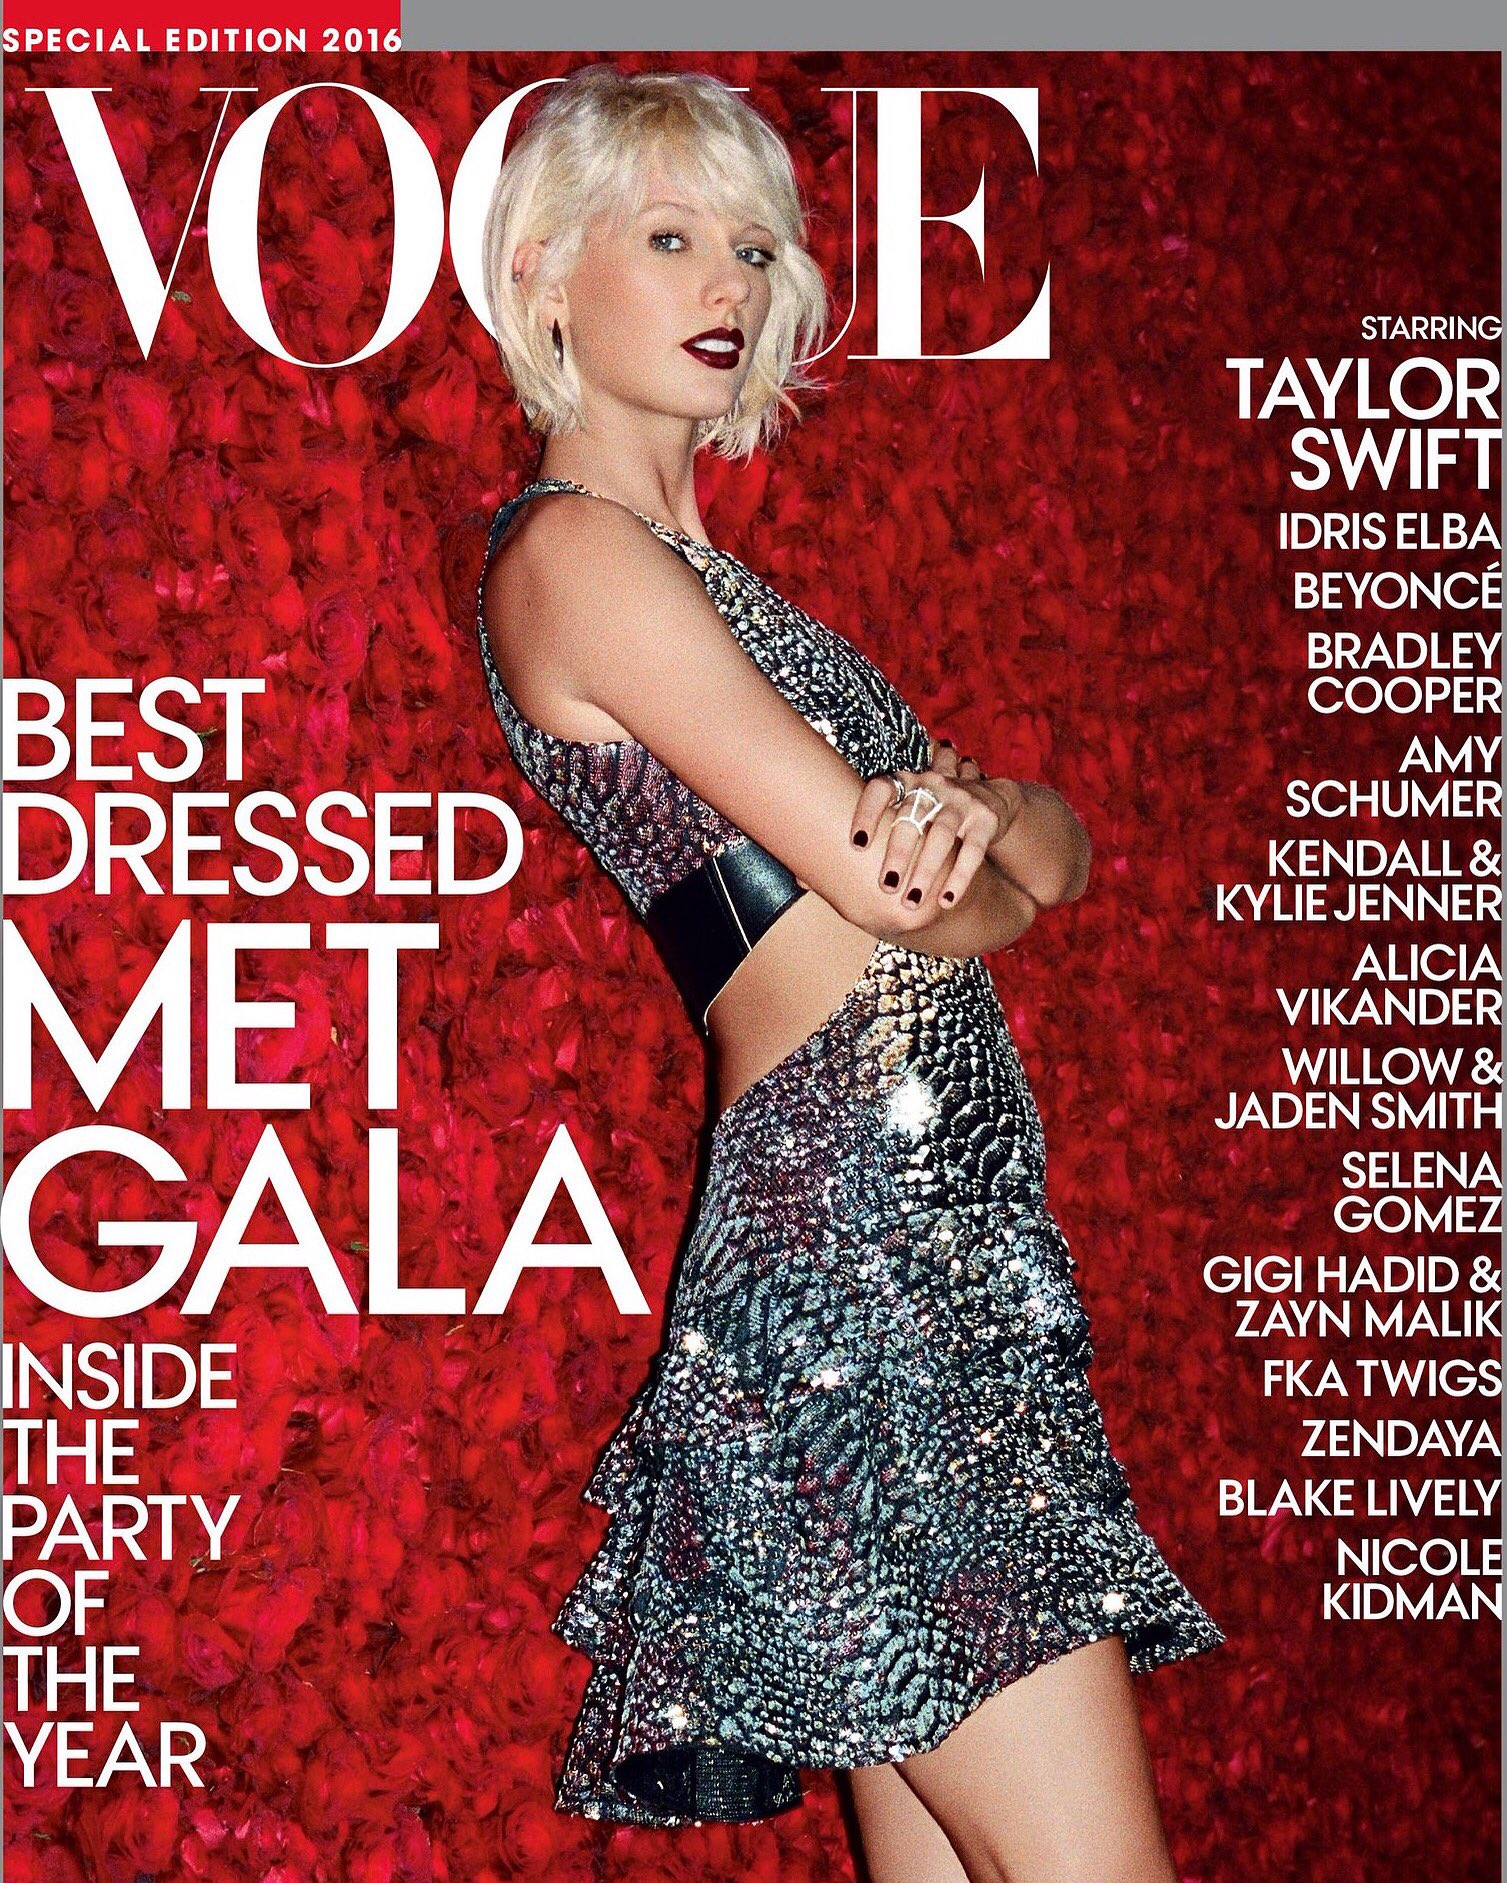 WOAH thanks @voguemagazine for the cover and Theo Wenner for taking this photo at Met Gala! What a night ✨ https://t.co/b12sYNDR9i